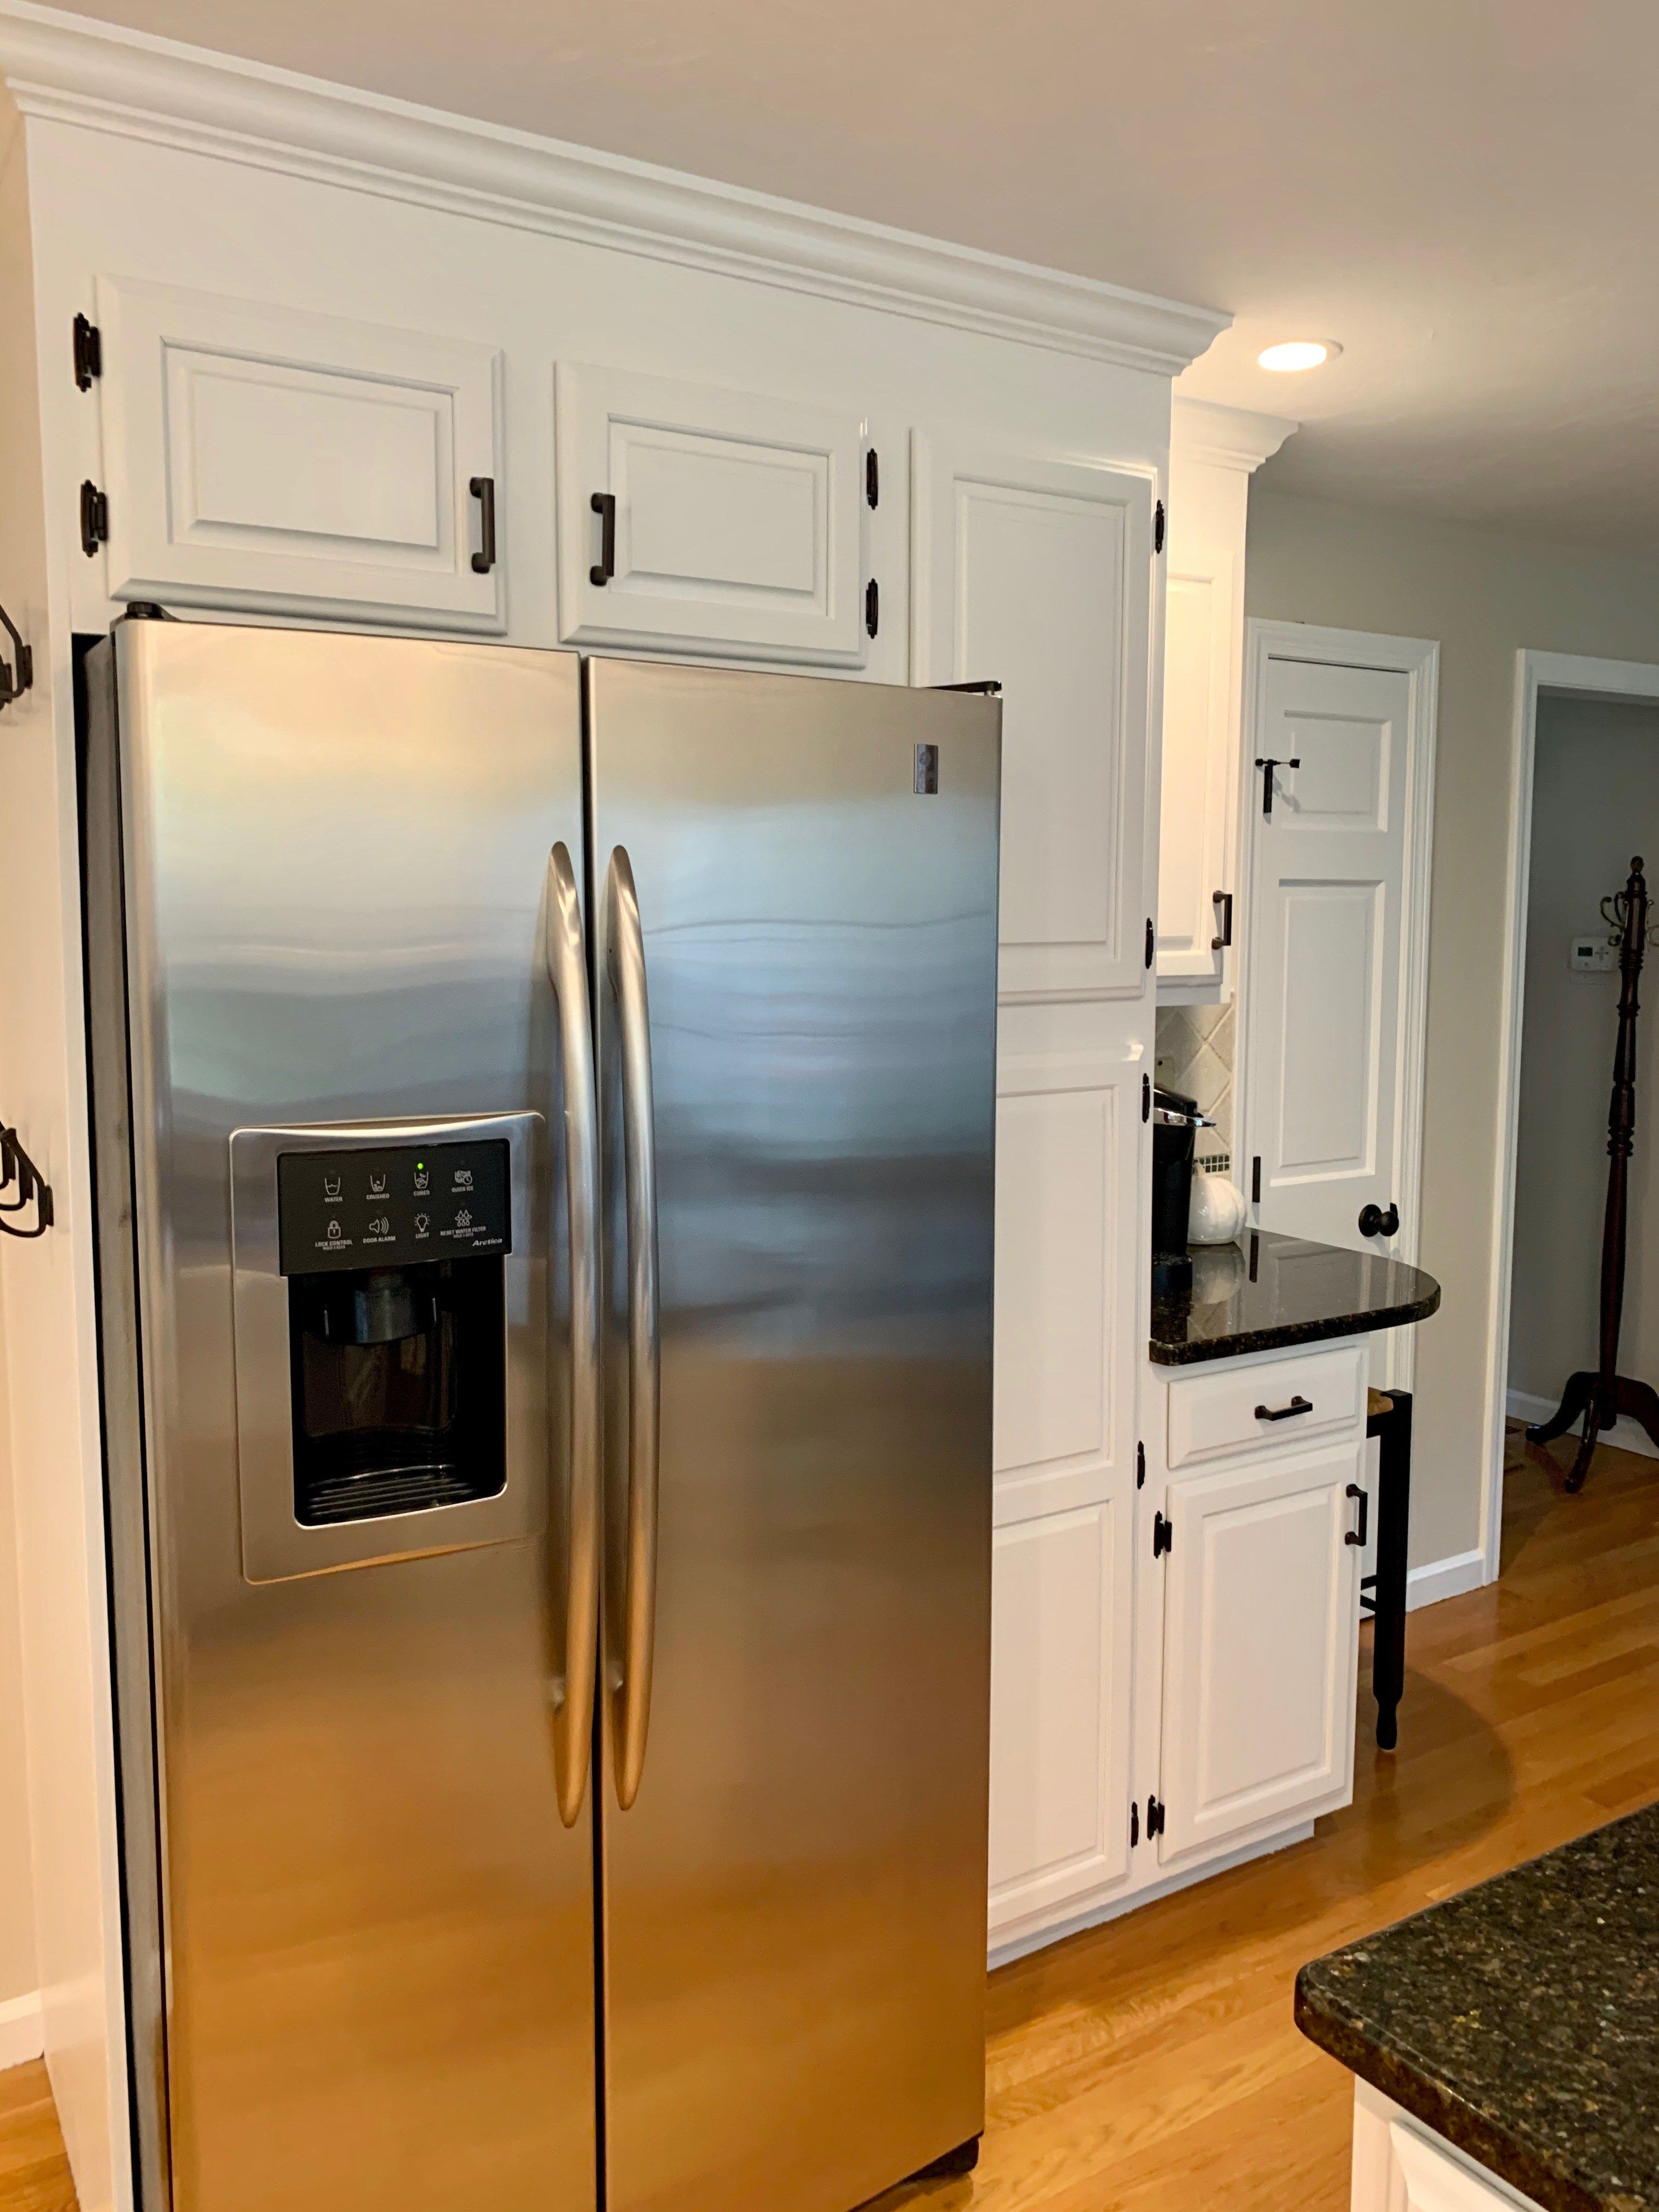 Kitchen Cabinet Painting Painting Cabinets Refinishing Cabinets Painting Kitchen Cabinets